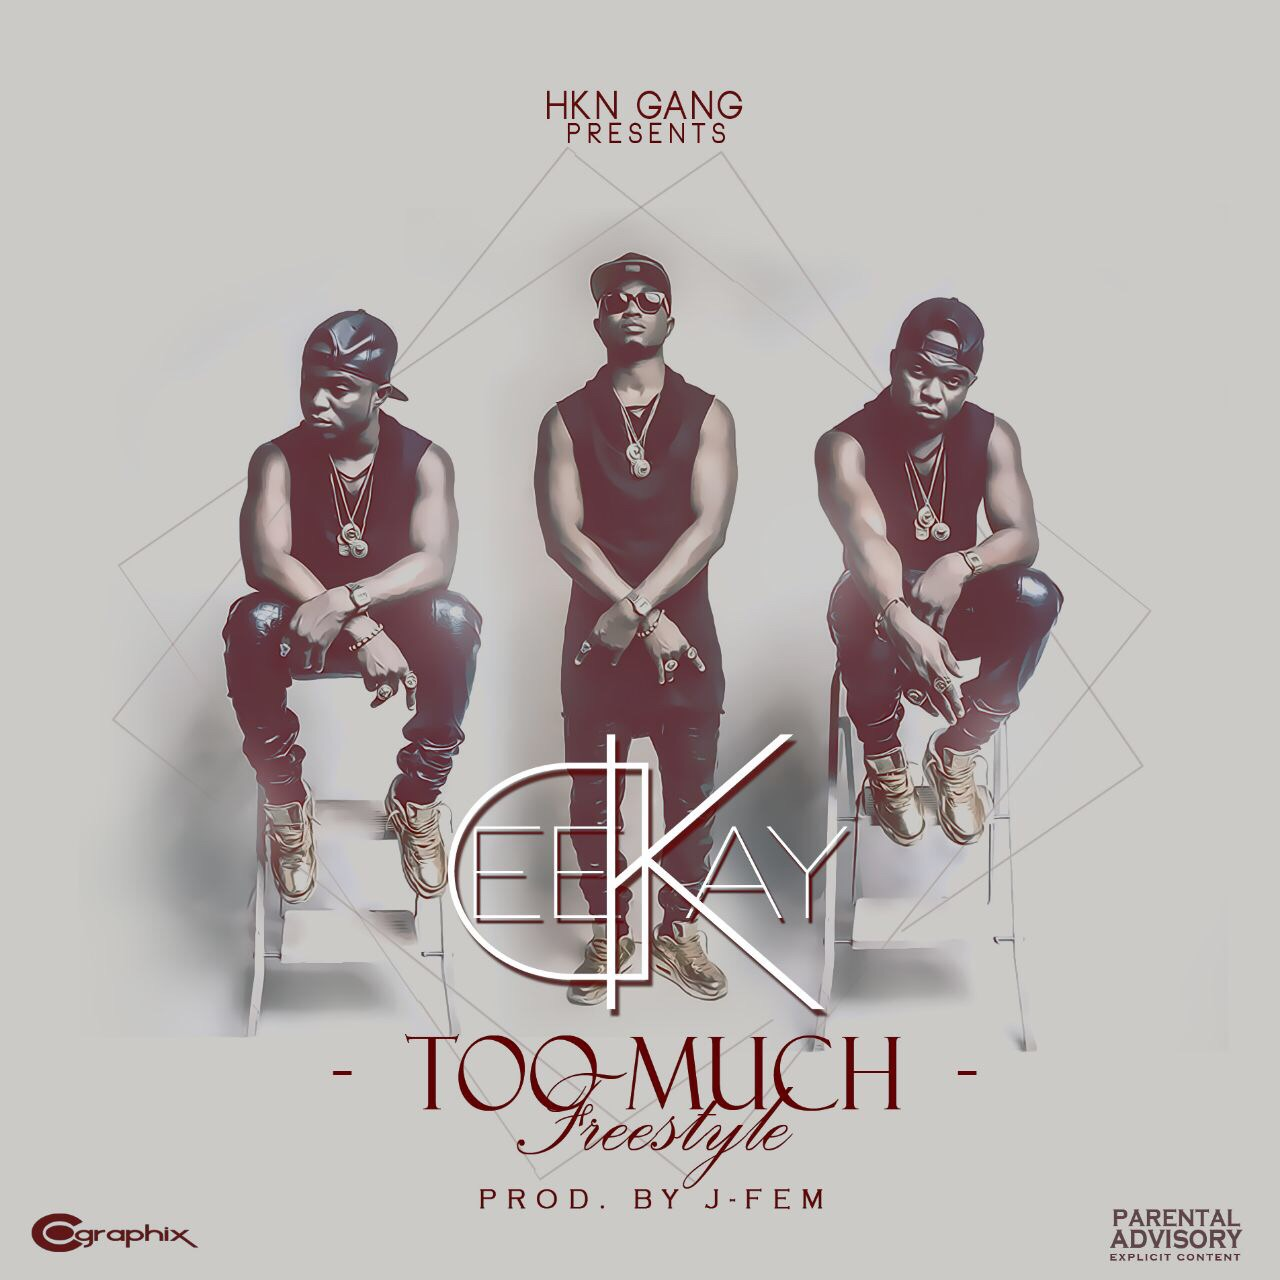 Deekay - Too Much - ART